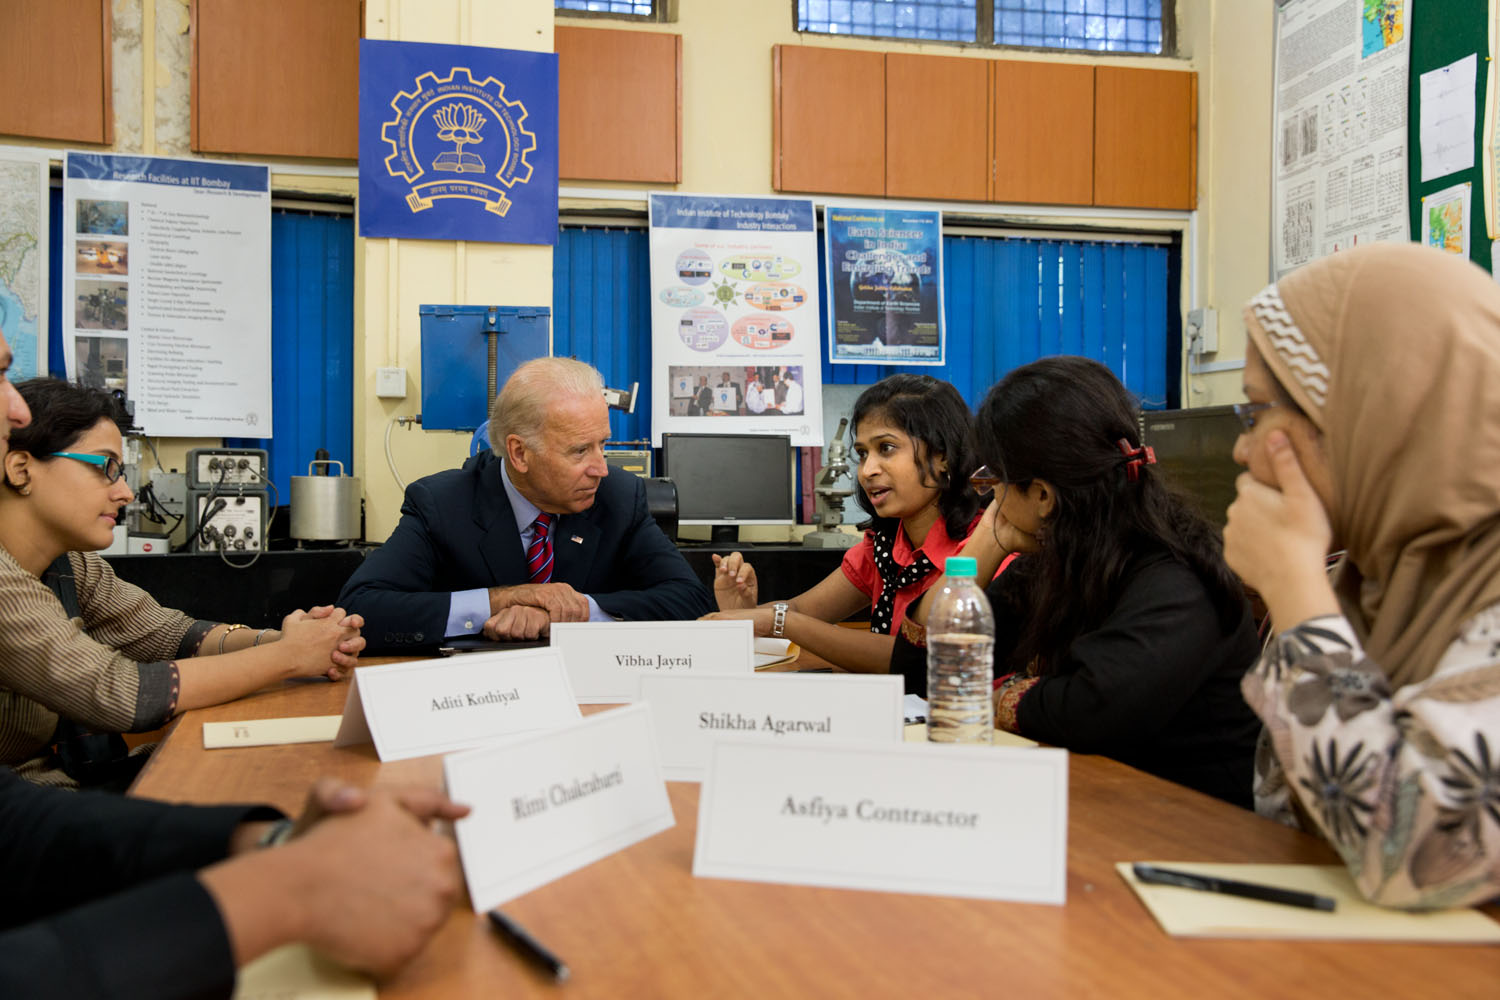 Vice President Joe Biden meets with female students at the Indian Institute of Technology, in Mumba